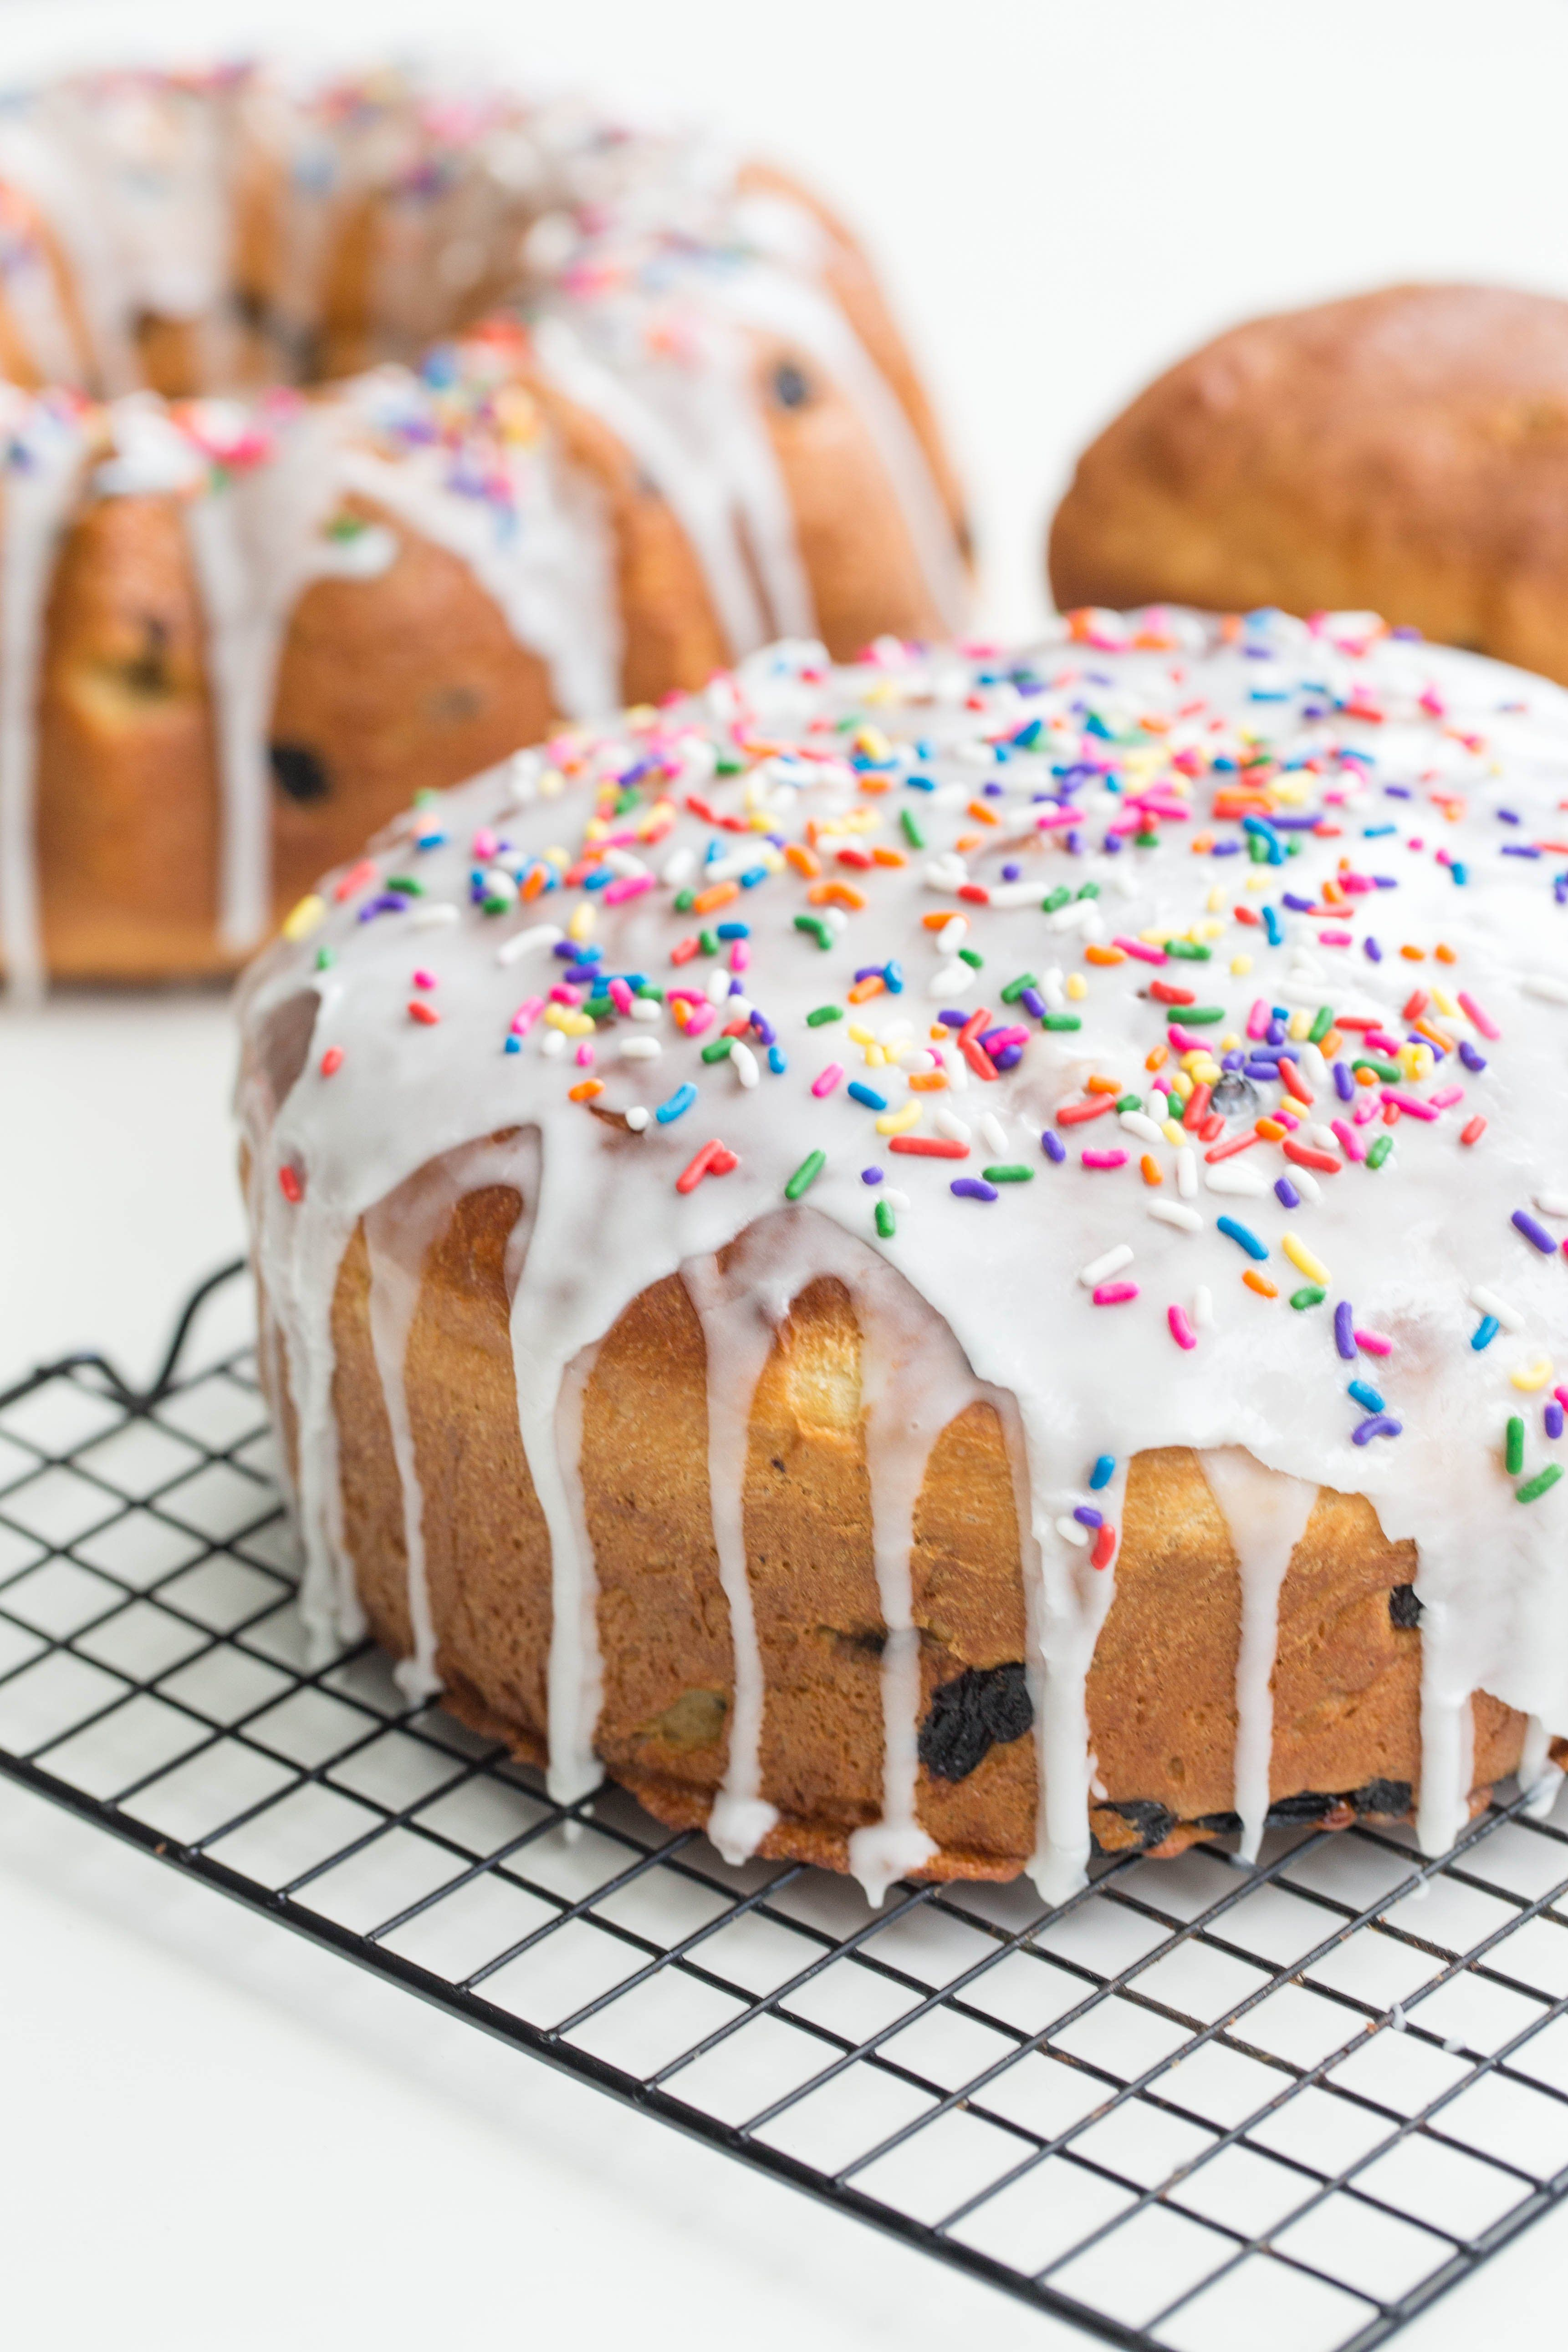 Pin by Beverly Wenkosky on Breads in 2020 | Easter bread ...